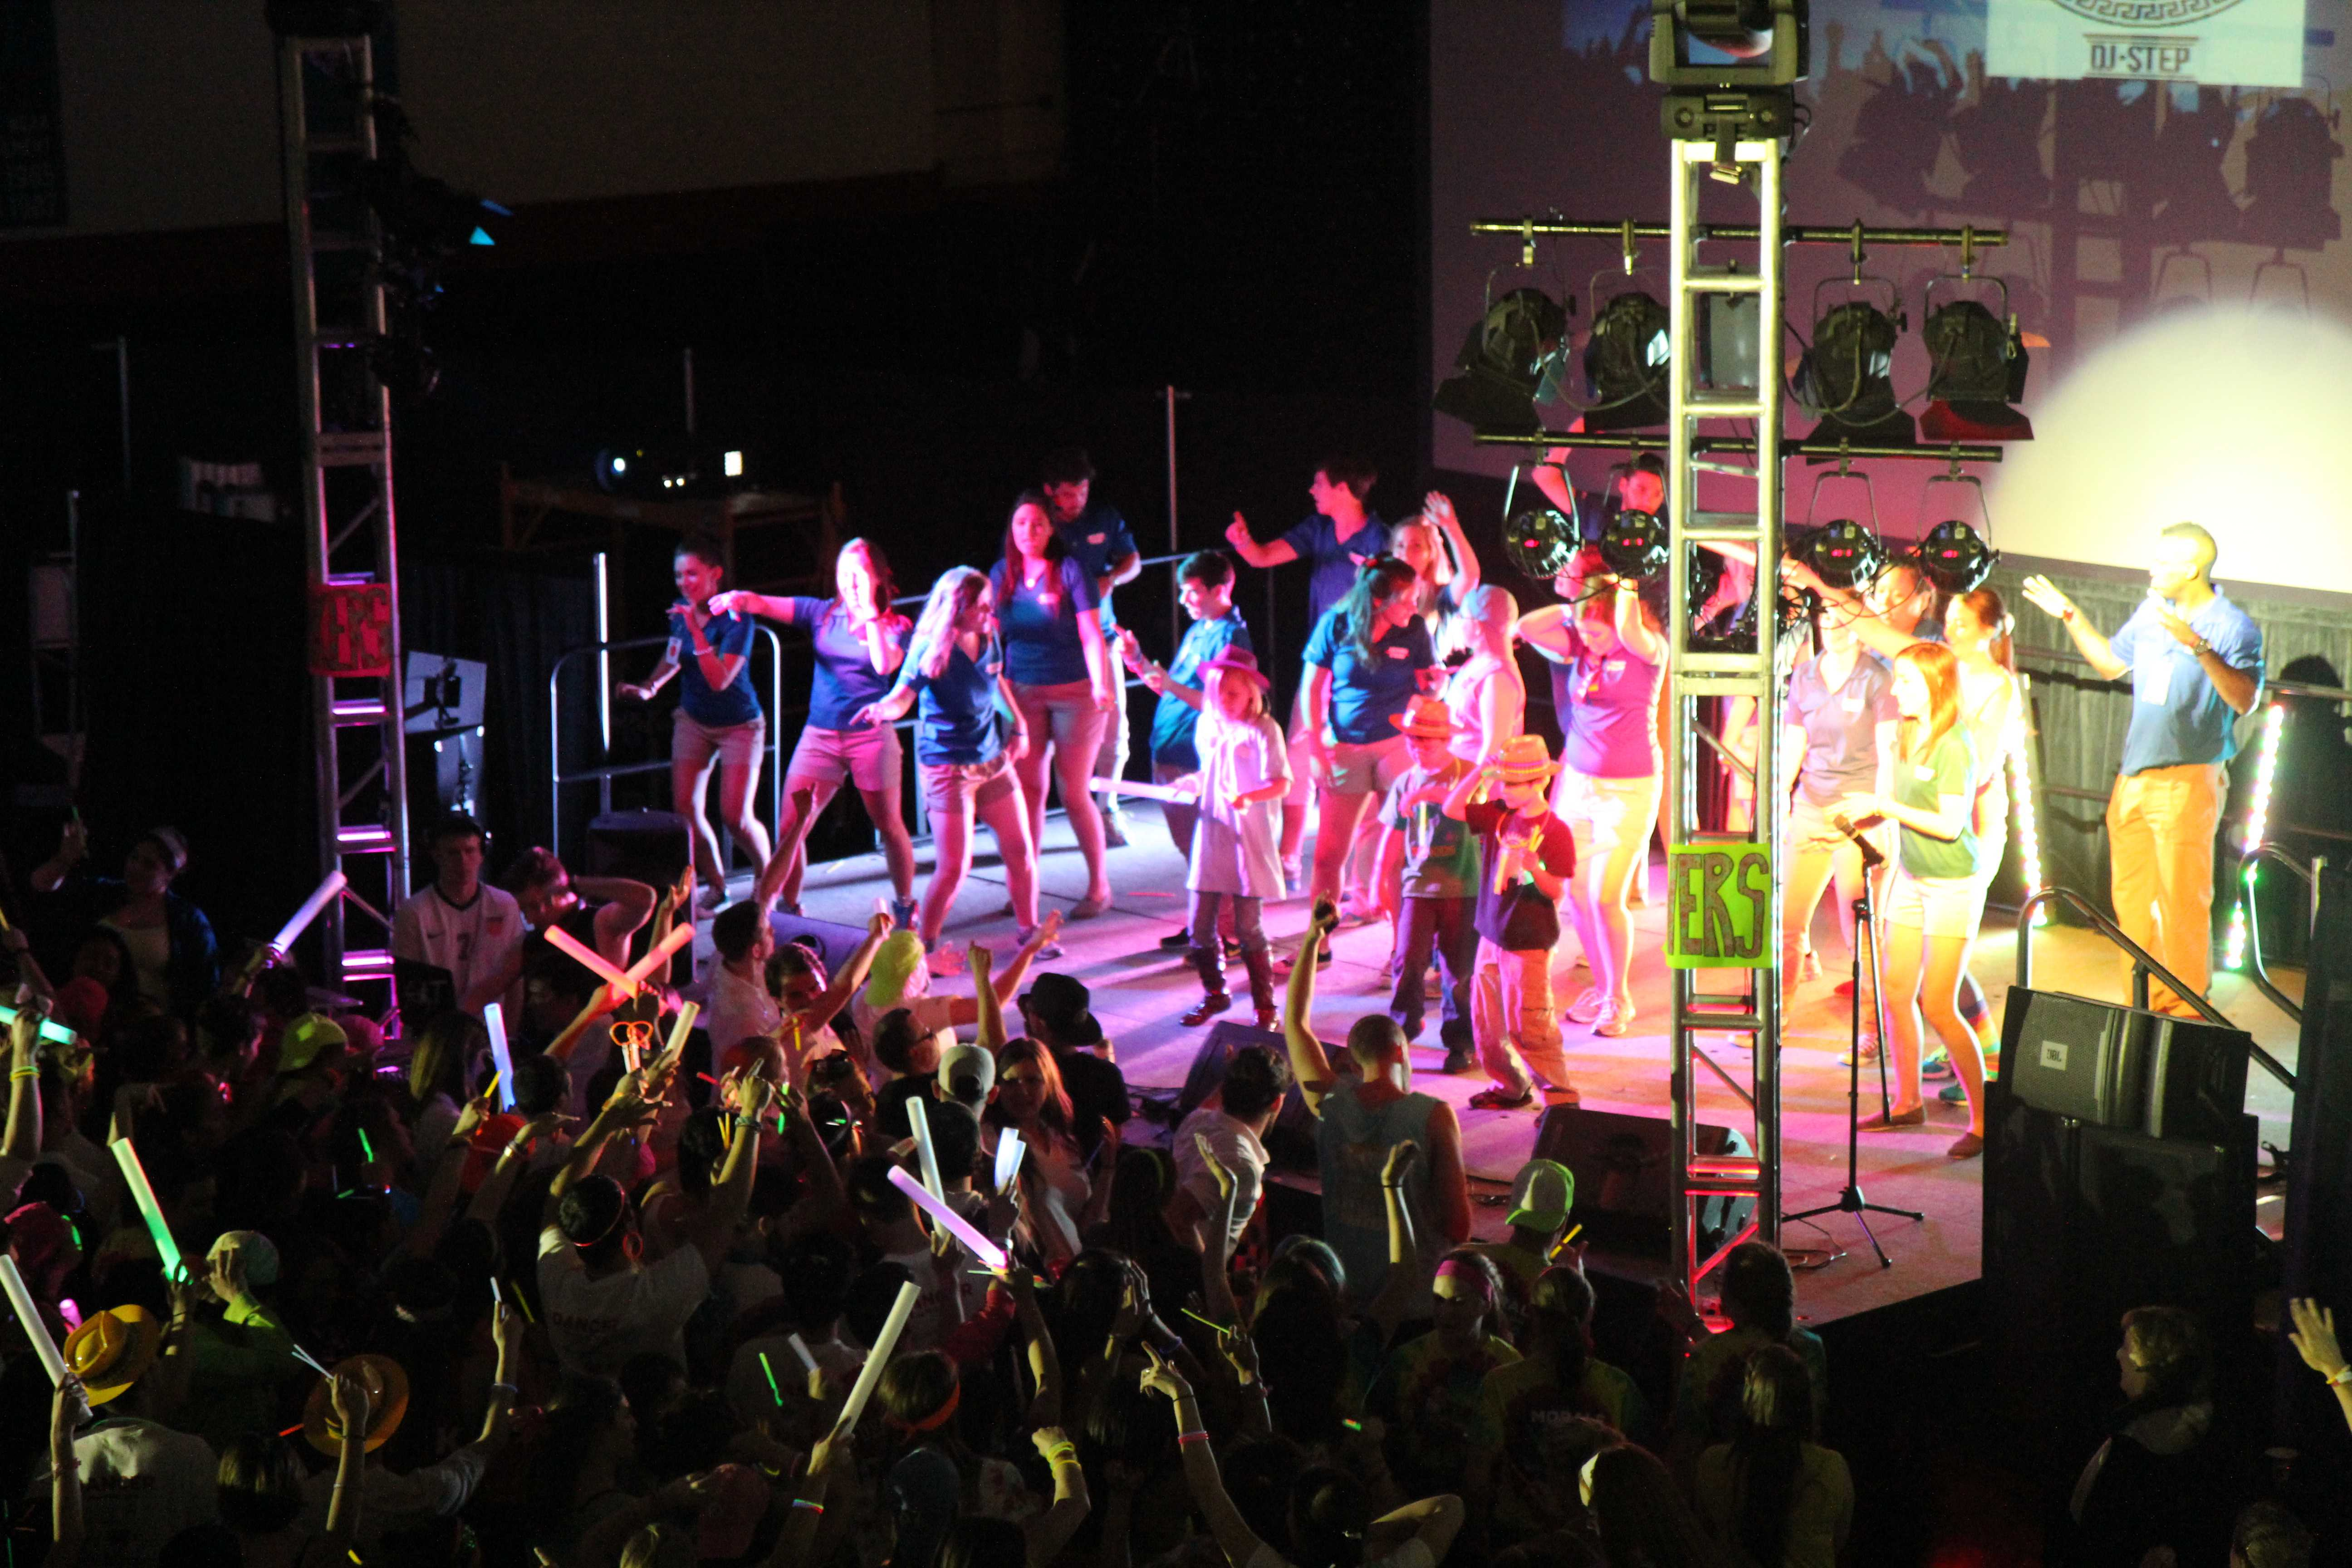 DemonTHON participants danced for 24 hours in a marathon effort to raise money for Ann & Robert H. Lurie Children's Hospital. DemonTHON broke its record for the most money raised at the event in its third year. (John Gallagher / The DePaulia)